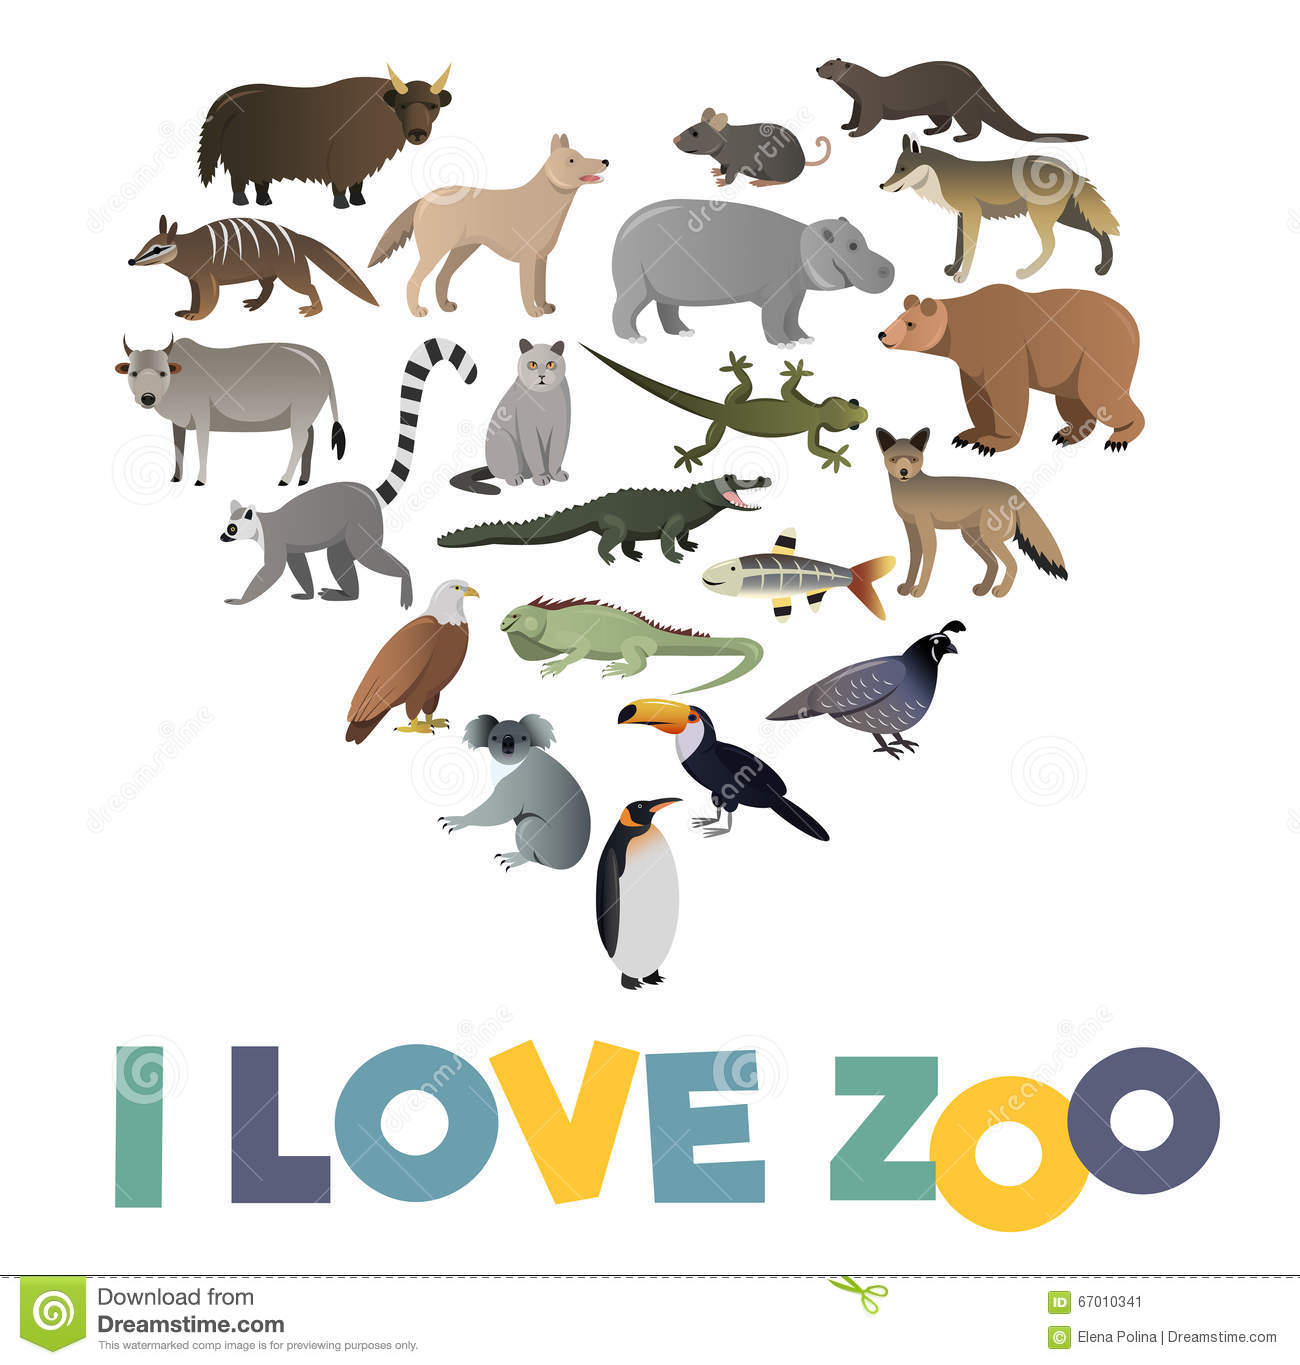 Zoo poster design - I Love Zoo Vector Poster With Animals Images Stock Vector